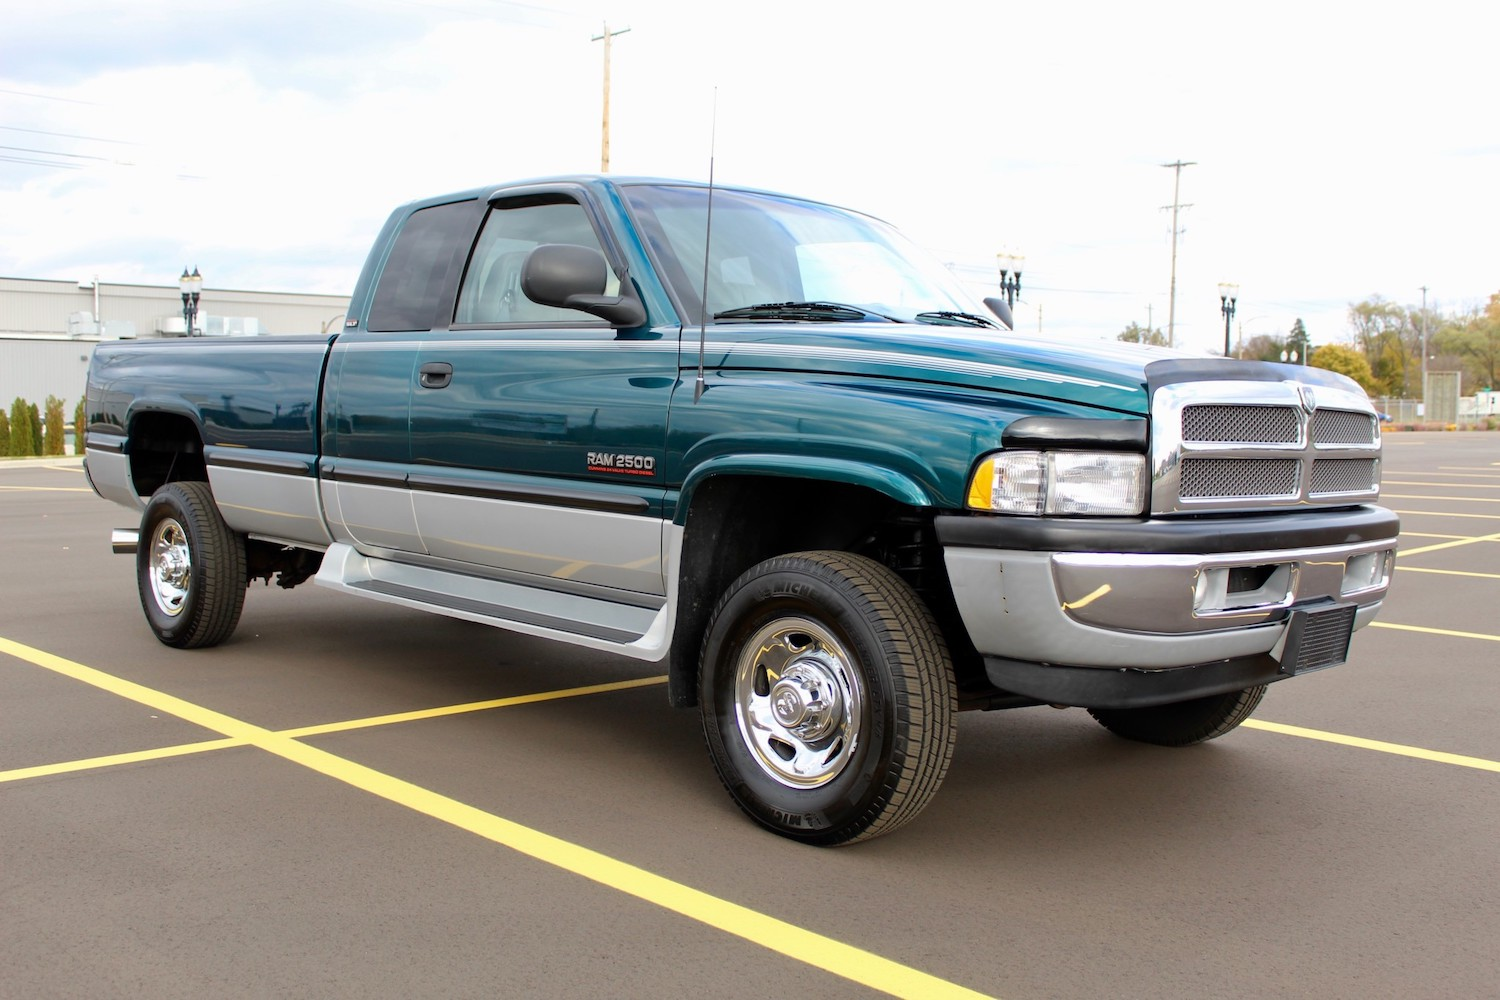 This 1998 Dodge Ram looks like it was built yesterday